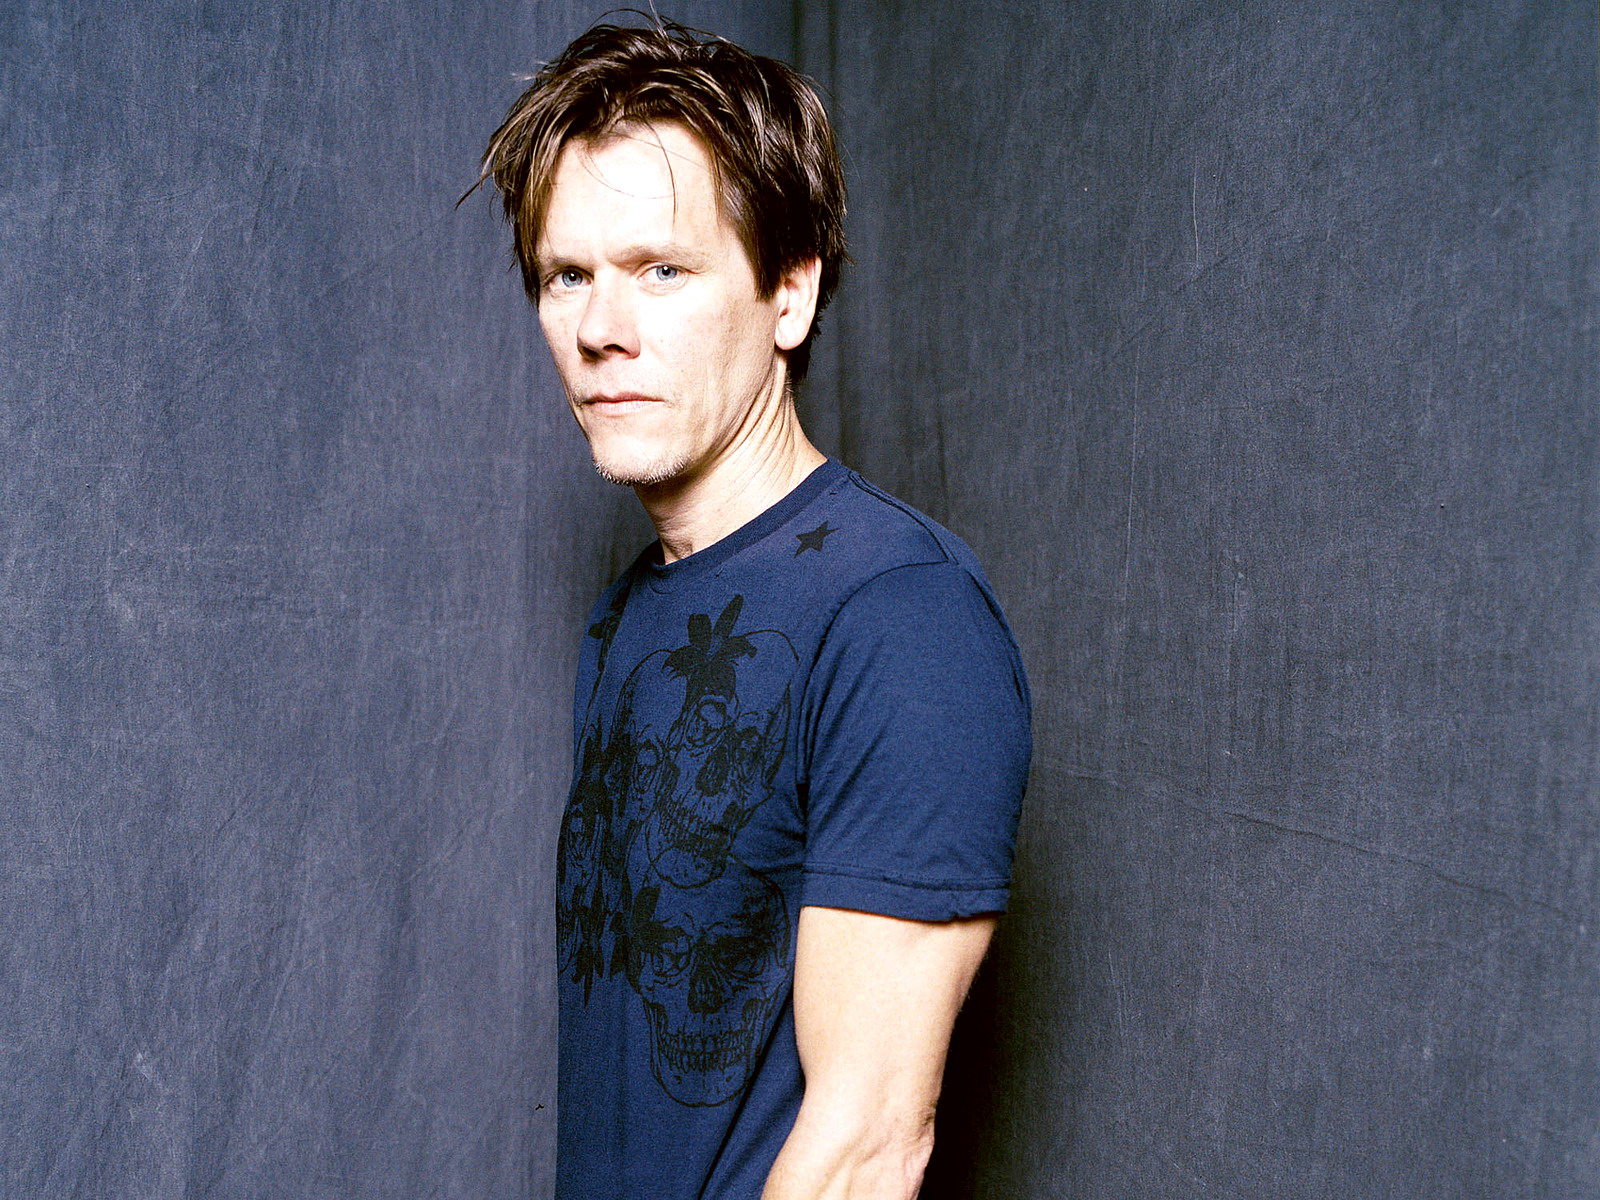 1600x1200 - Kevin Bacon Wallpapers 5